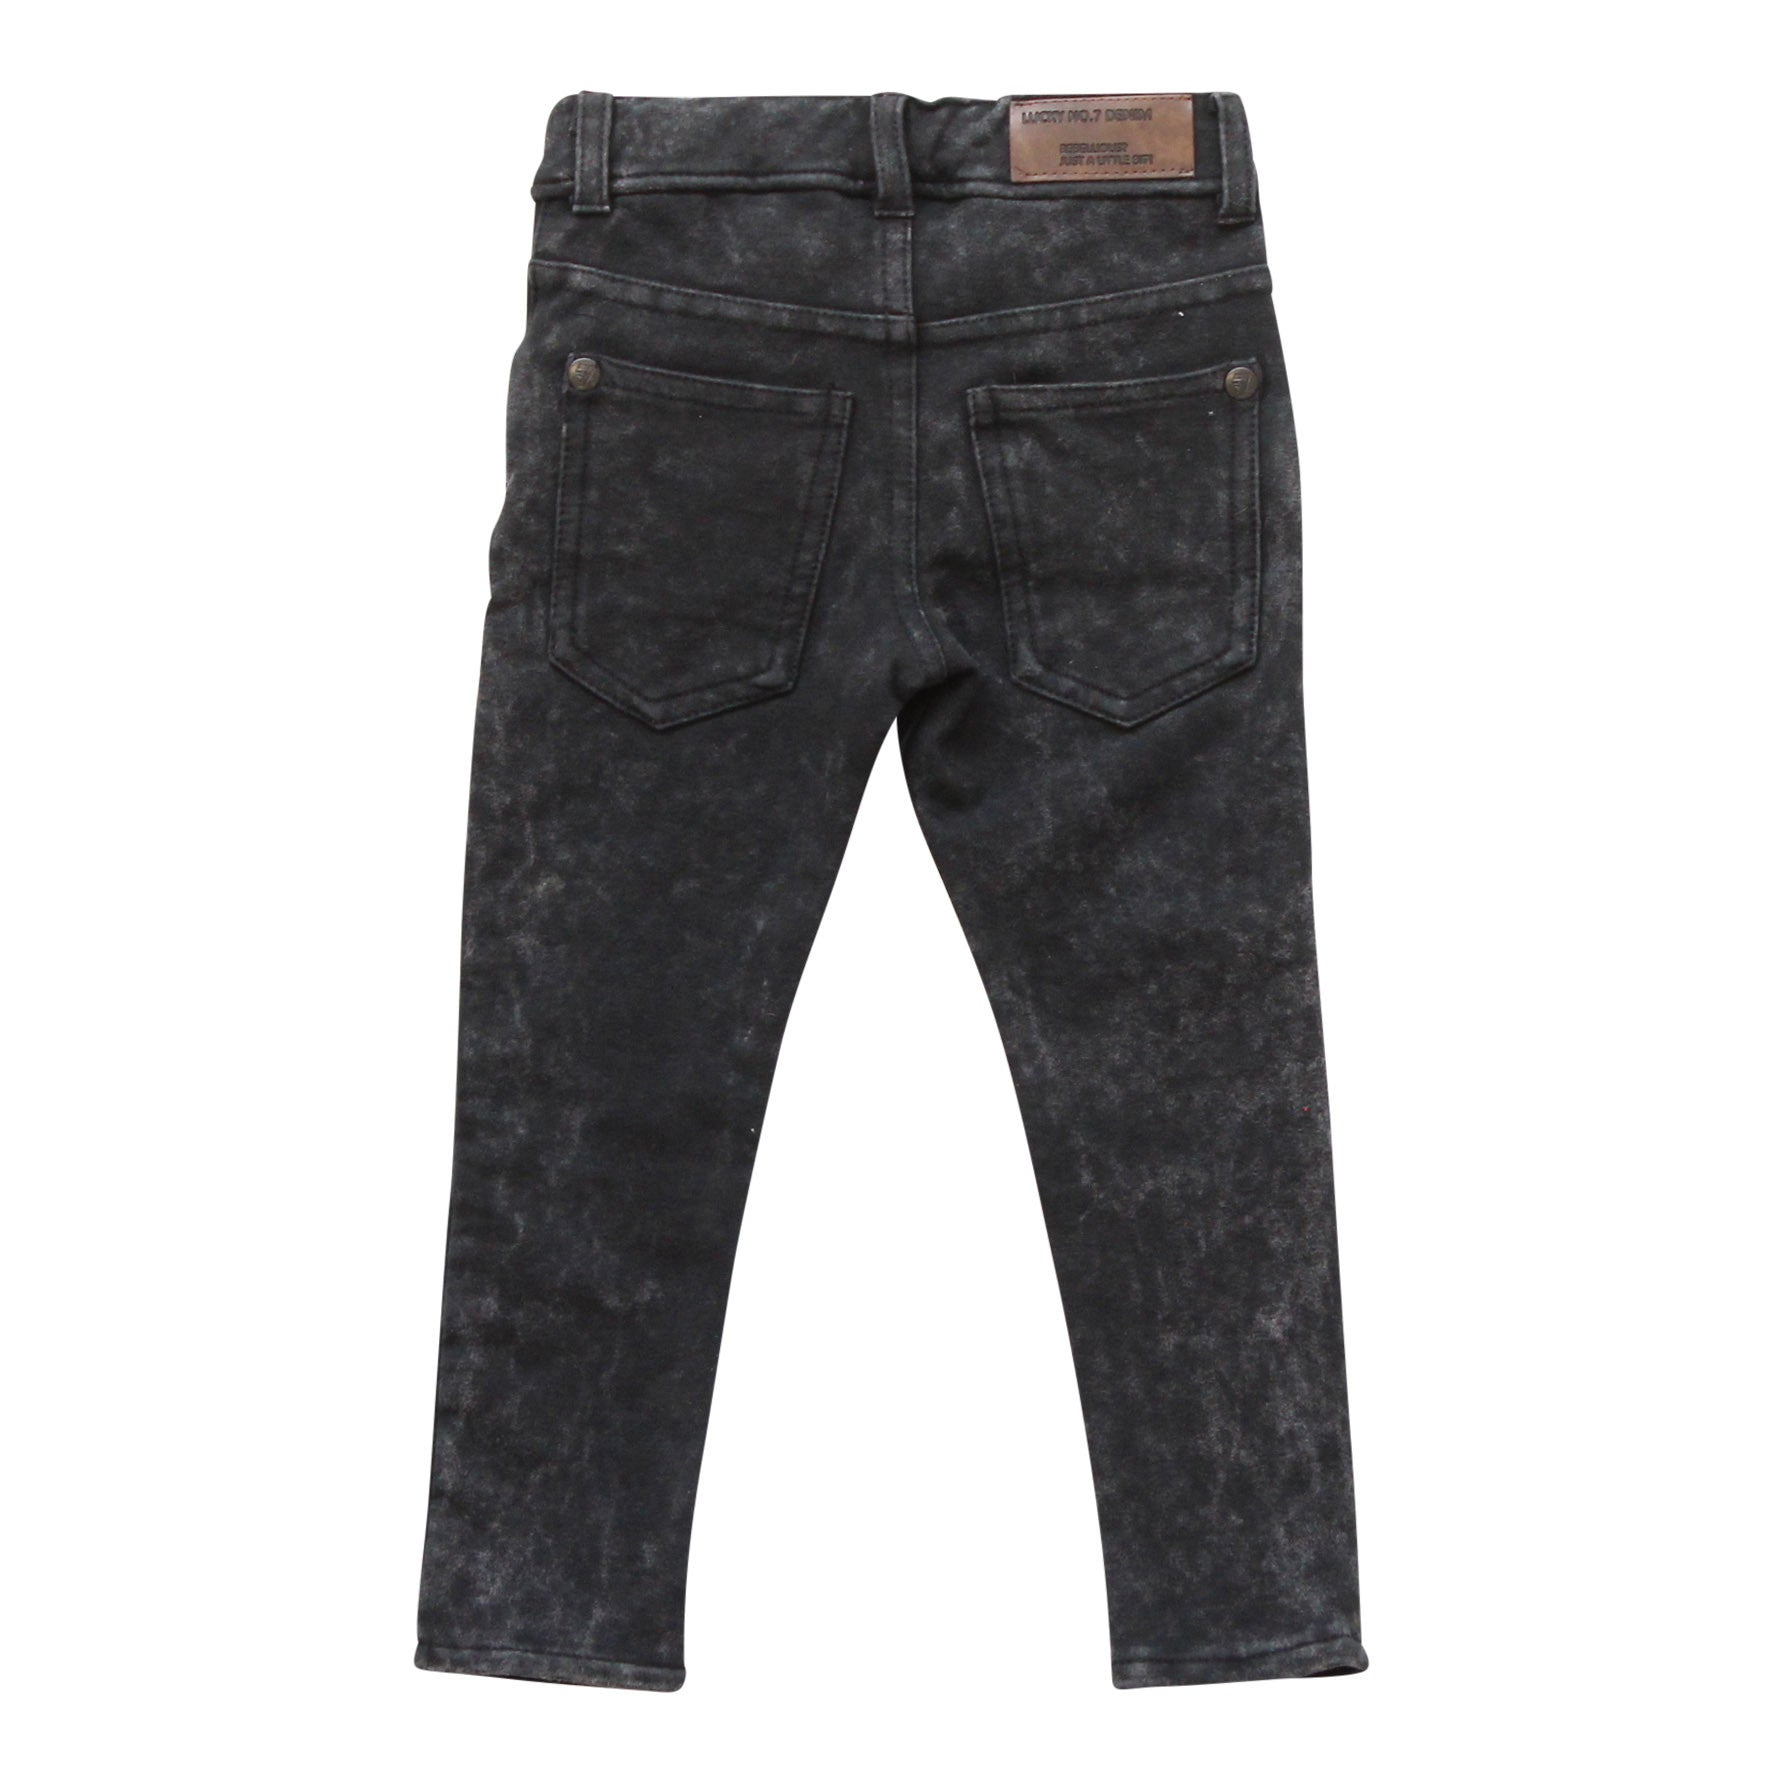 JOG DENIM PANTS